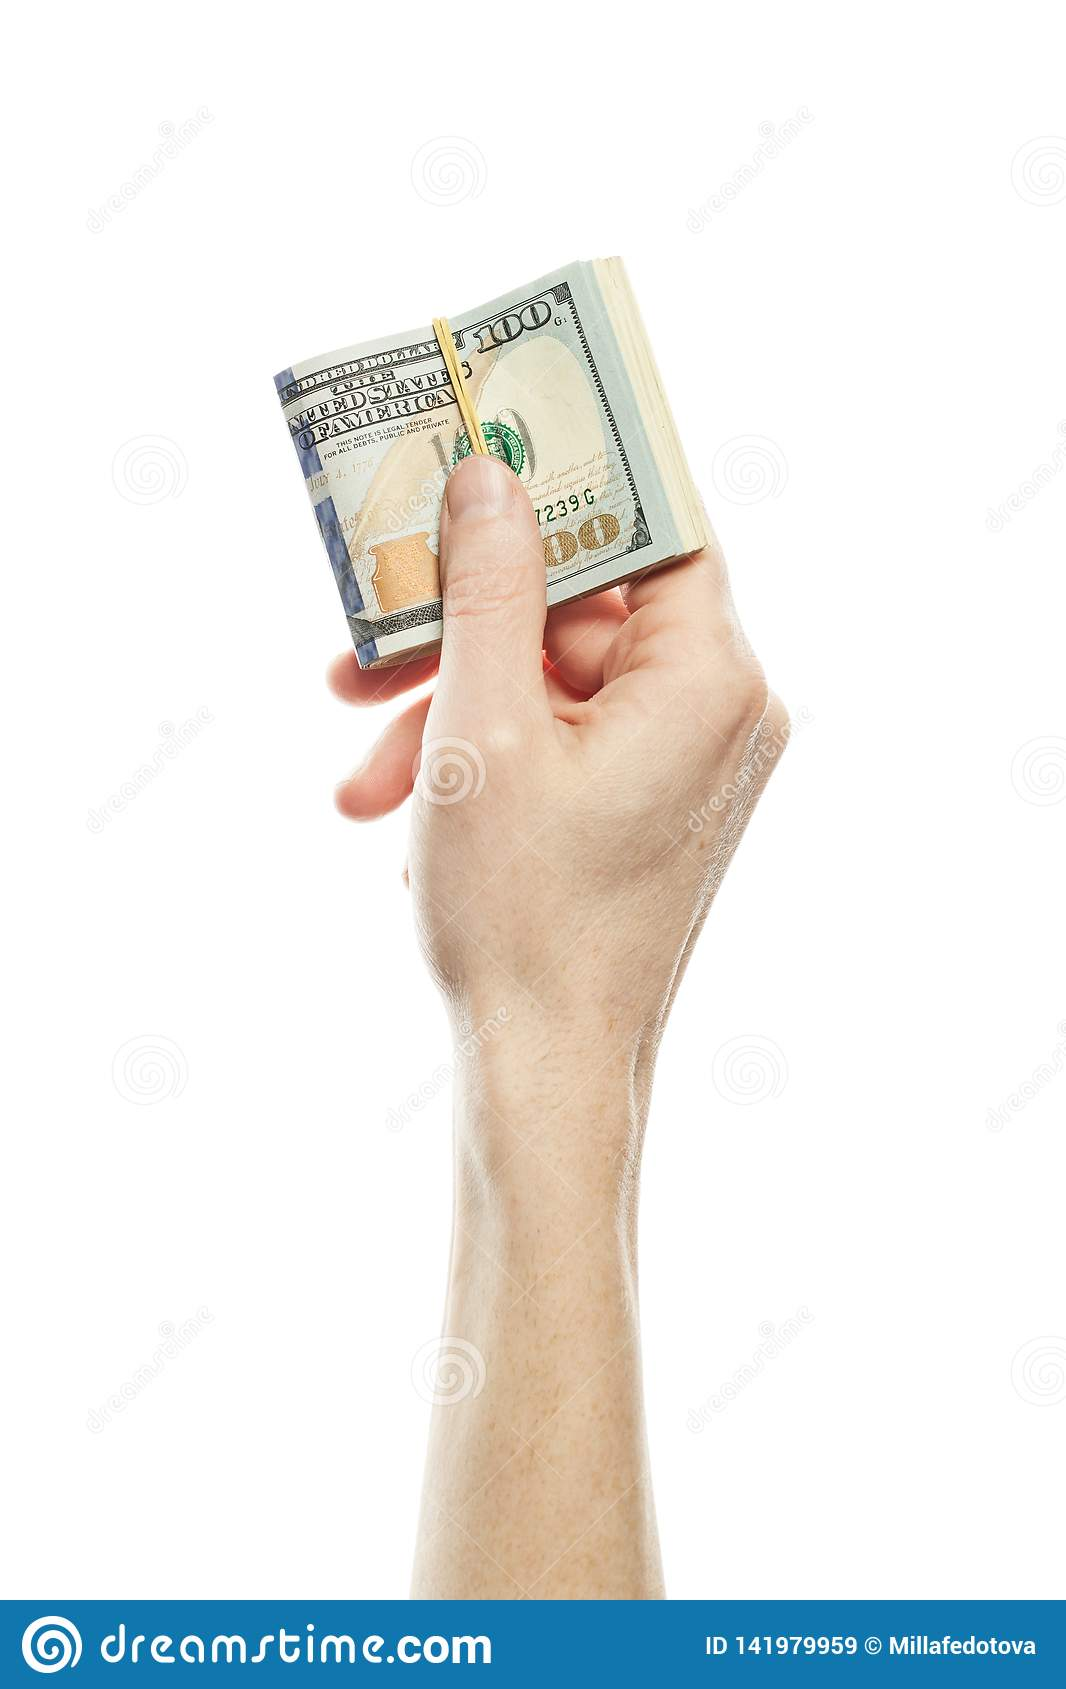 American dollars cash money in male hand isolated on white background. Many US Dollars 100 banknote